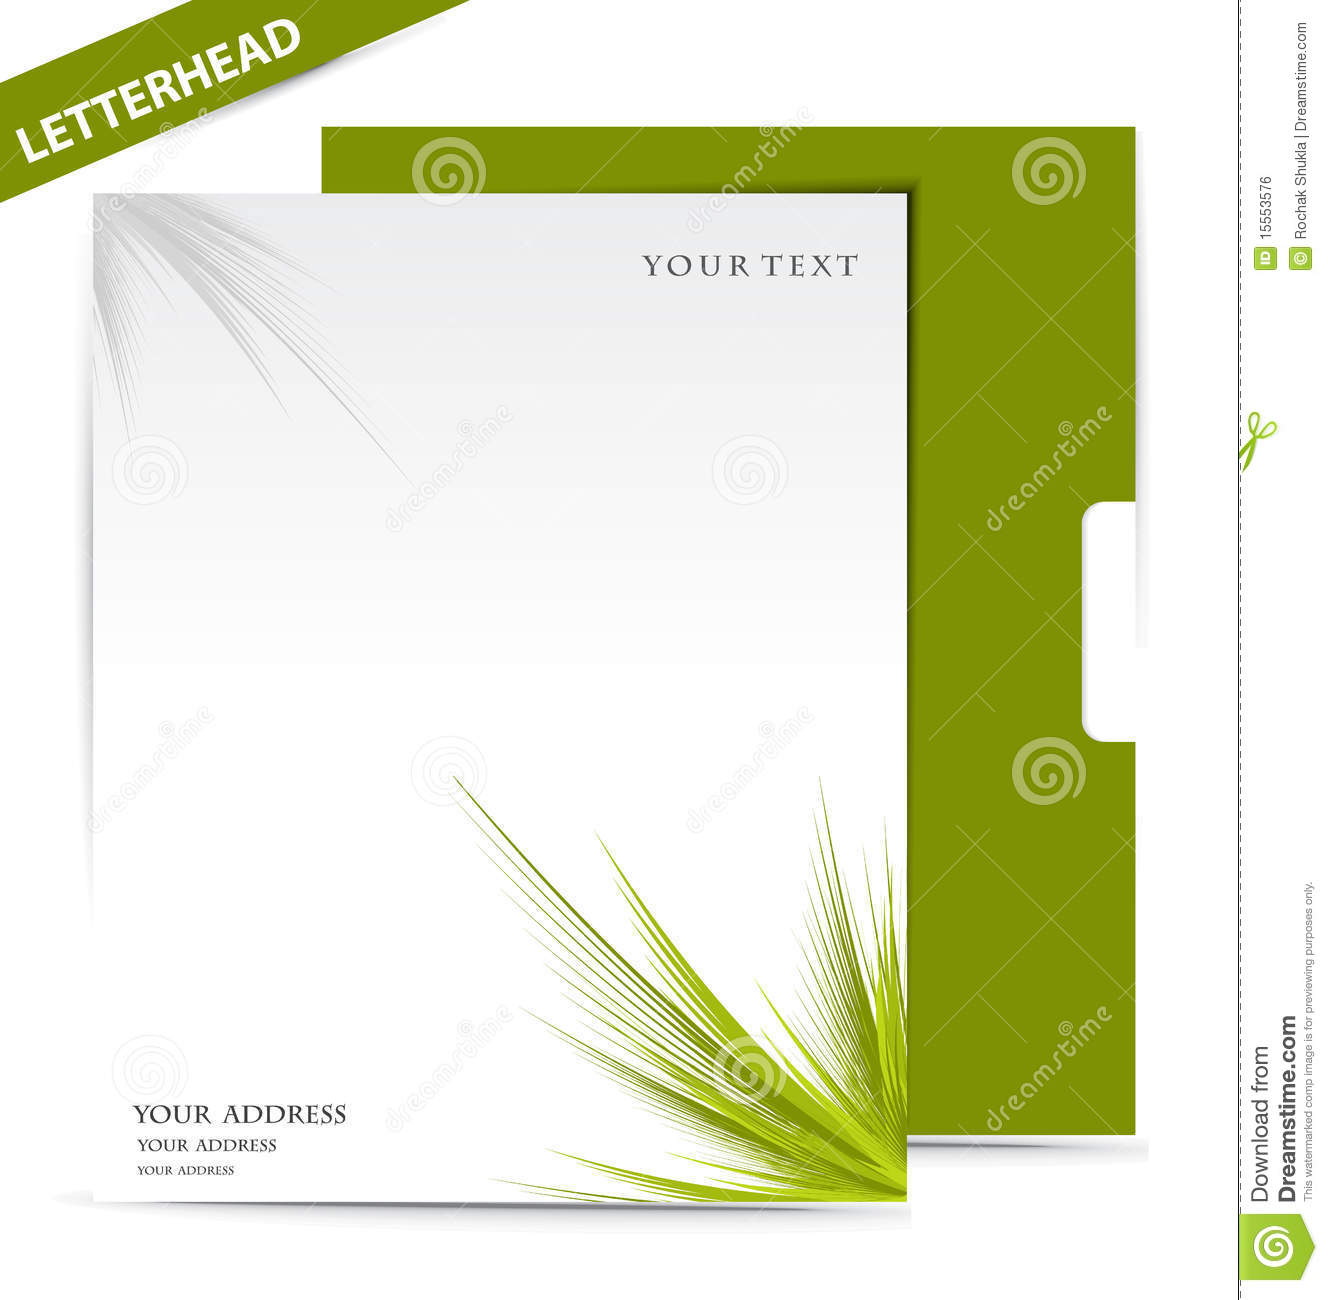 Letter Head Royalty Free Stock Image Image 15553576